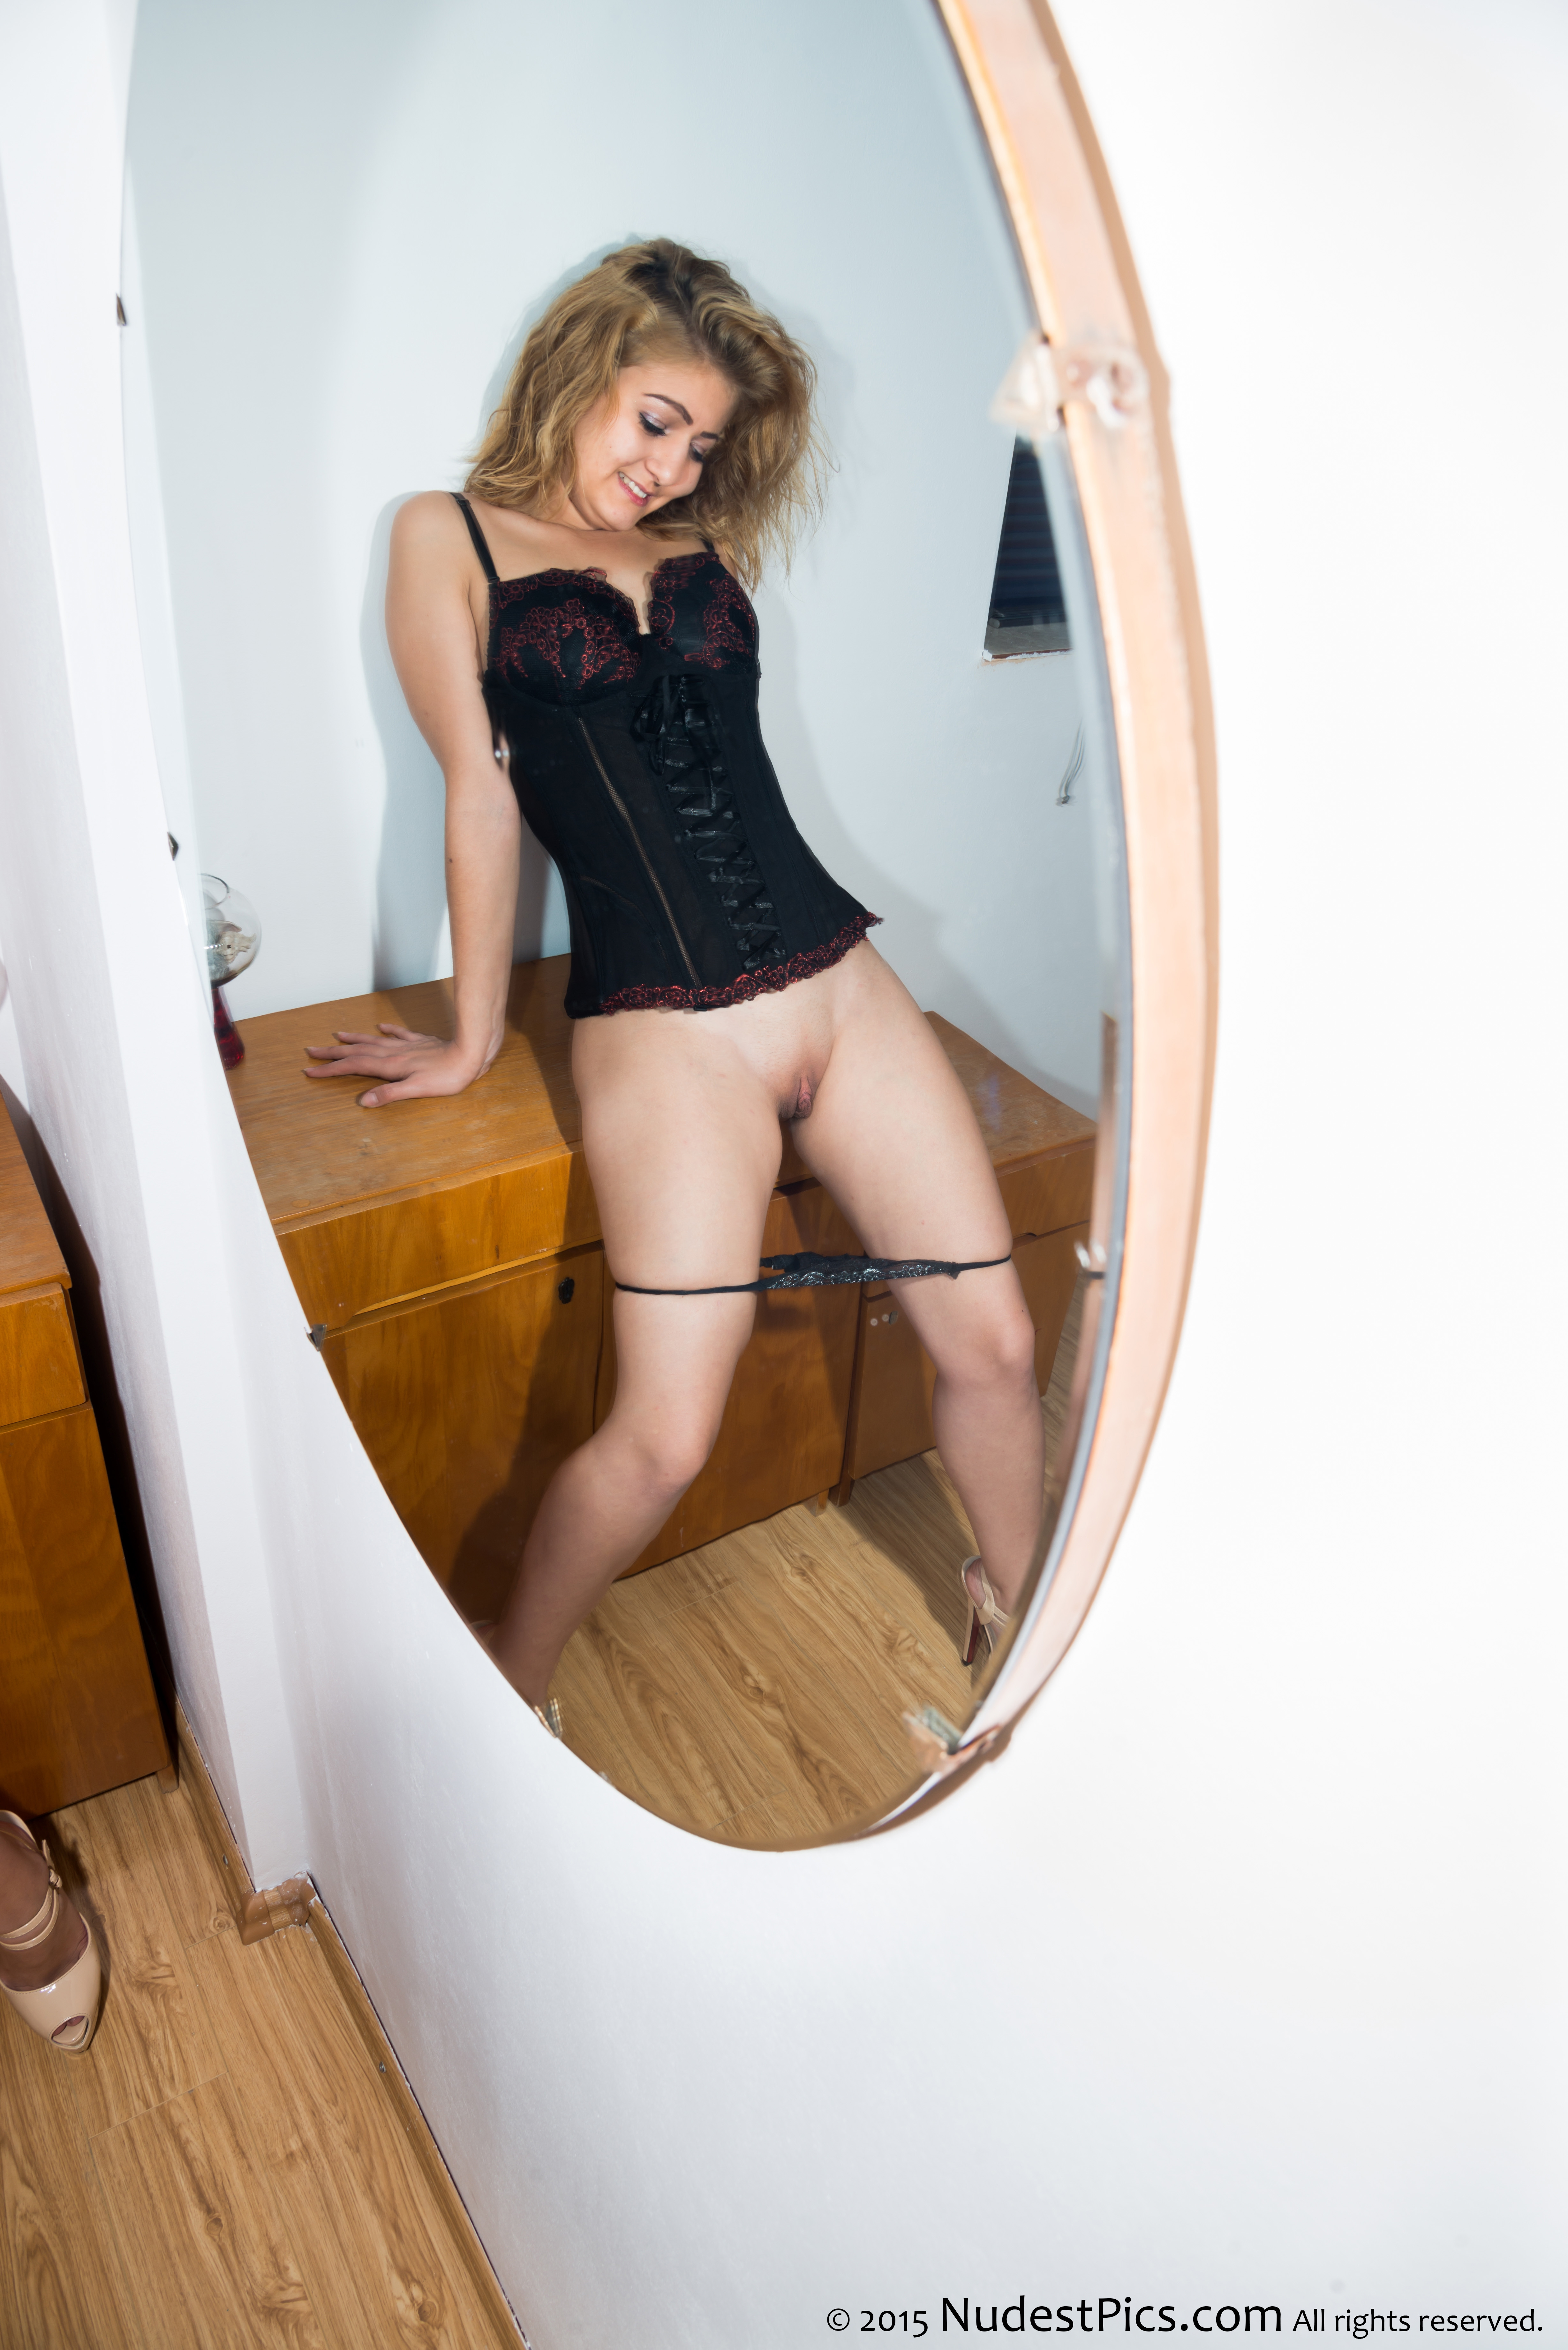 Silly Teen Girl Watching her Pussy in the Mirror